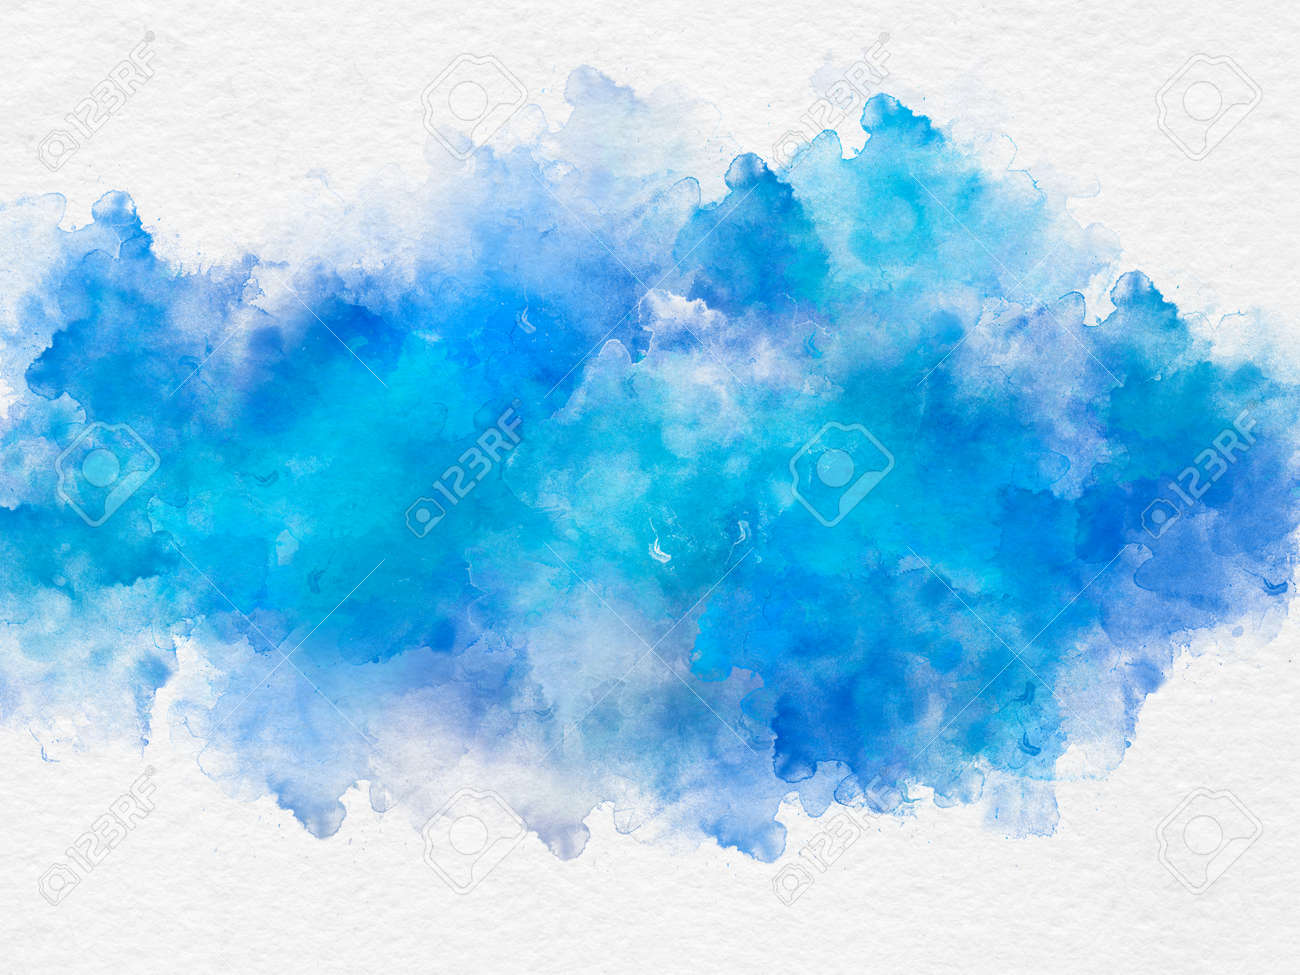 Artistic blue watercolor splash effect template on white background - 83938593